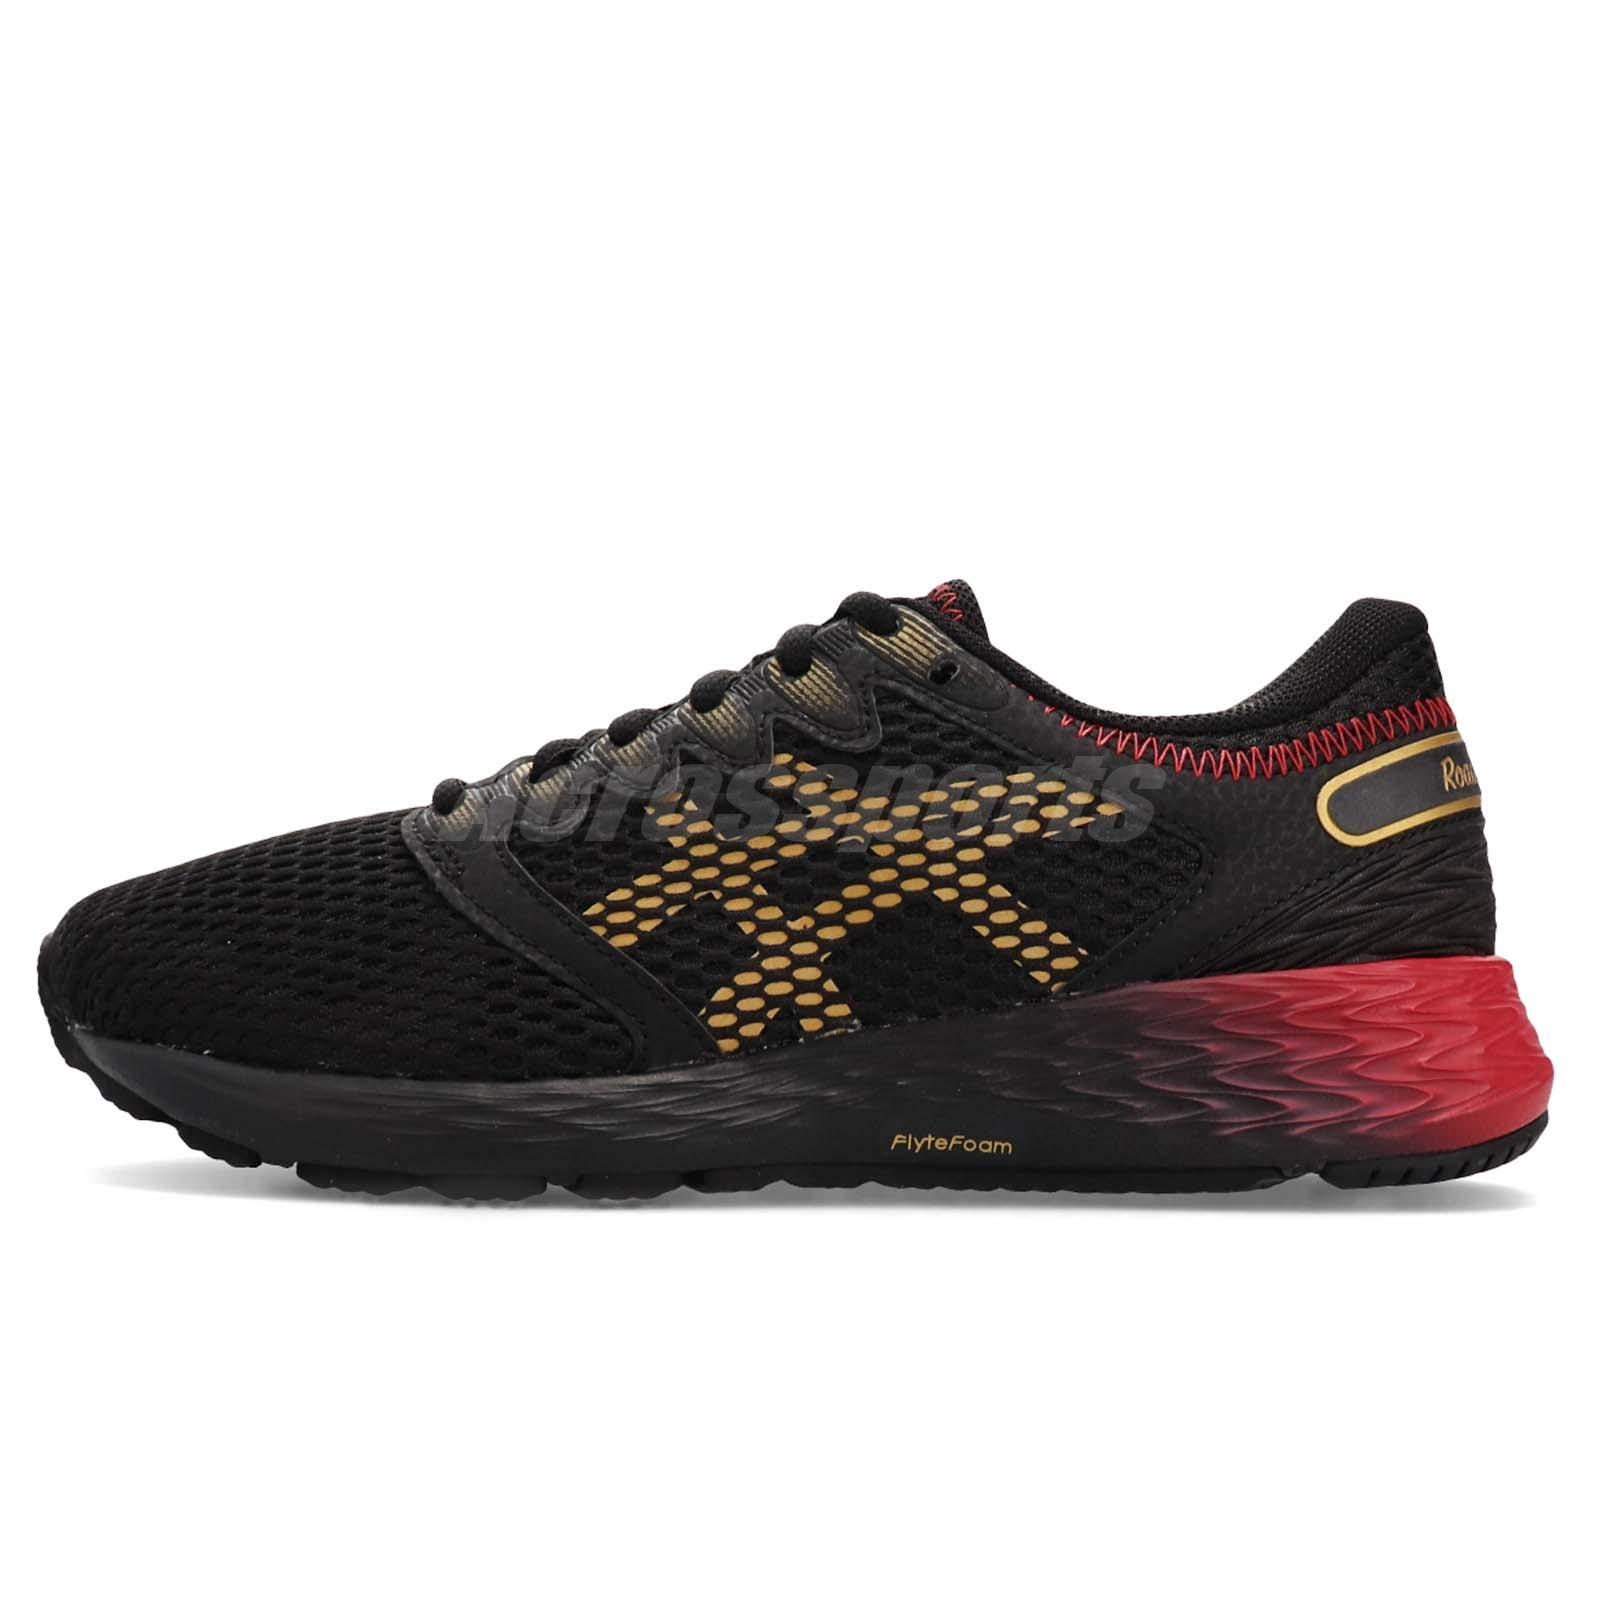 Details about Asics RoadHawk FF 2 Black Red Gold Women Running Shoes Sneakers 1012A503 001